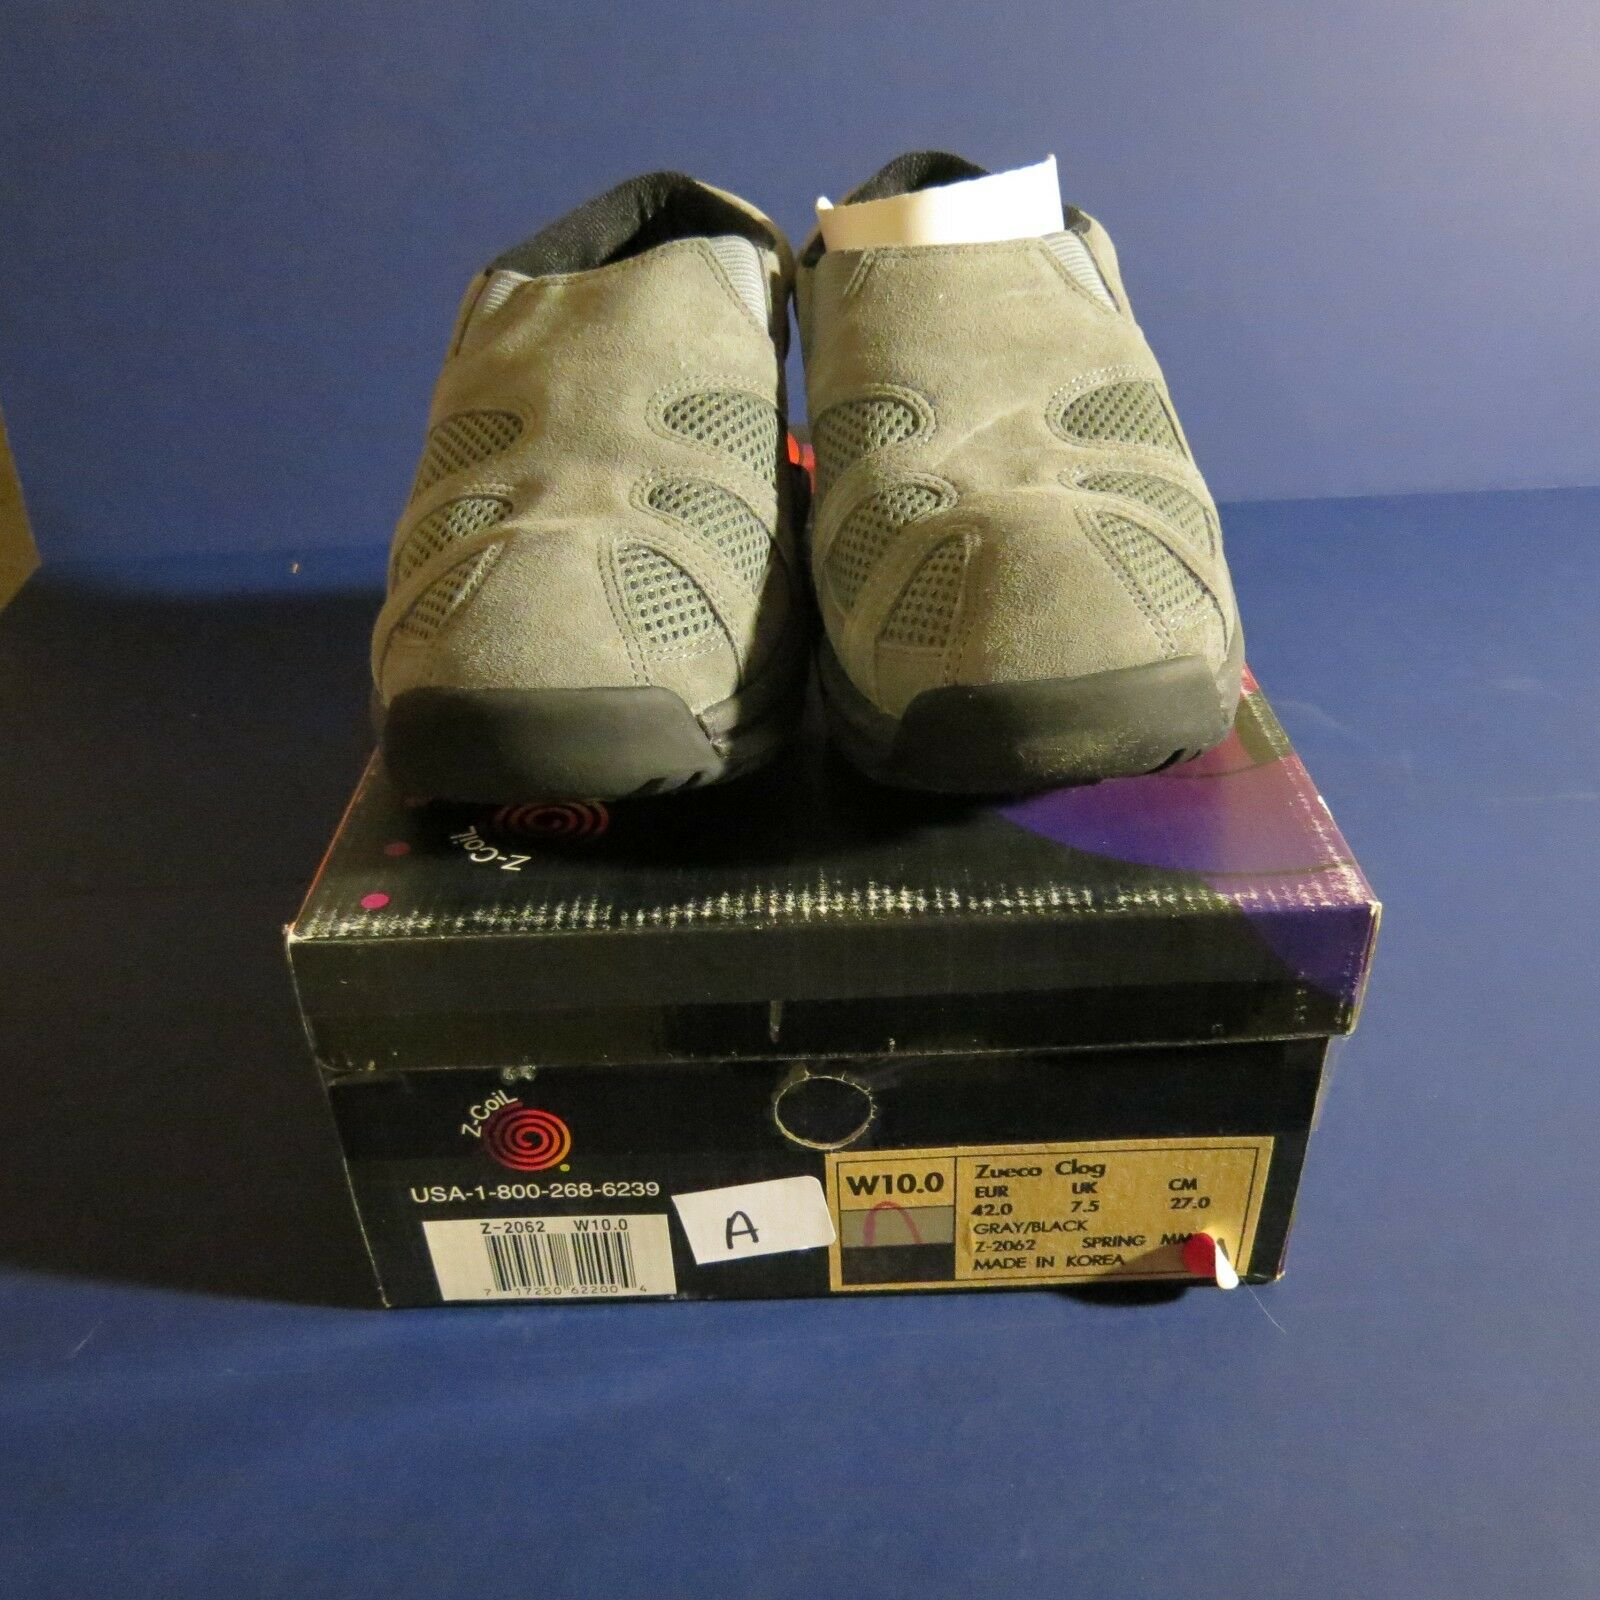 NEW Z-coil pain relief footwear womens 10 grey zueco suede clog with mesh